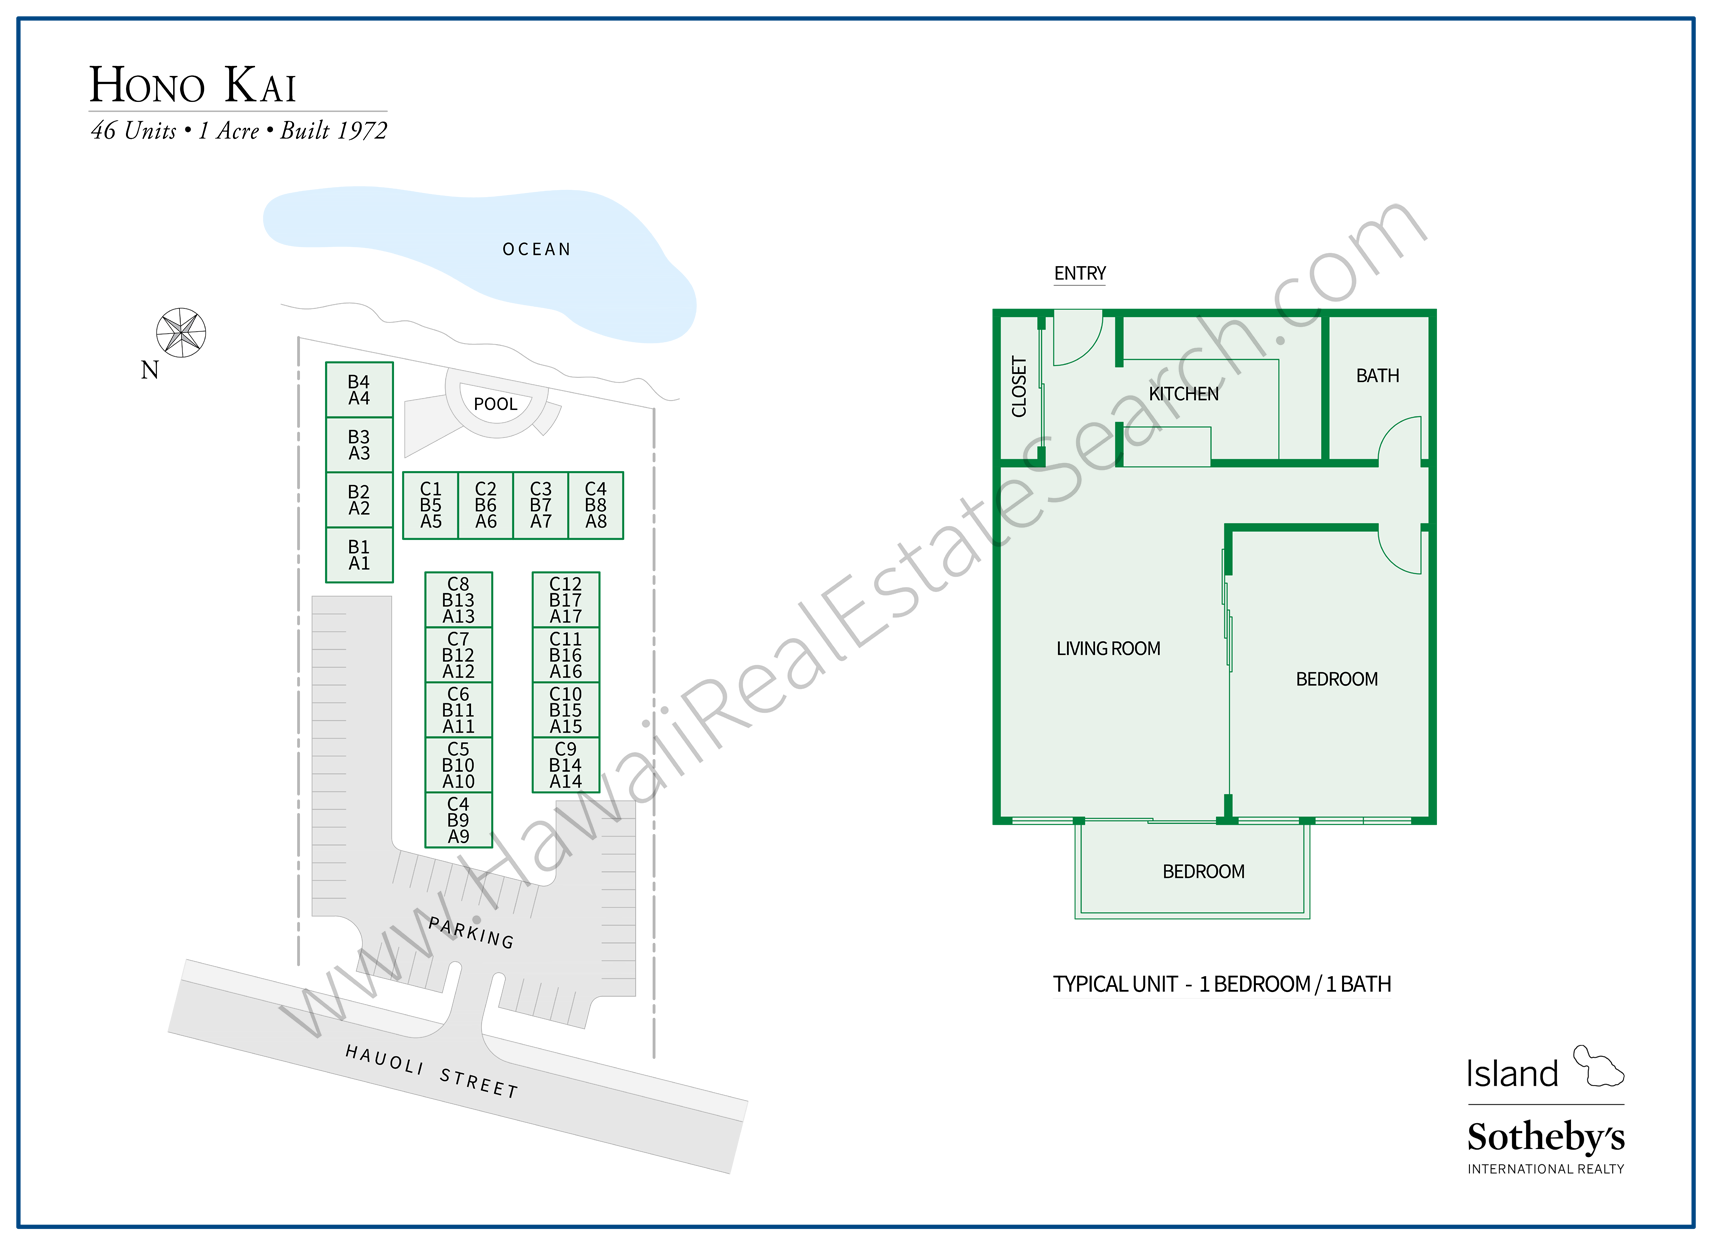 hono kai map and floor plan